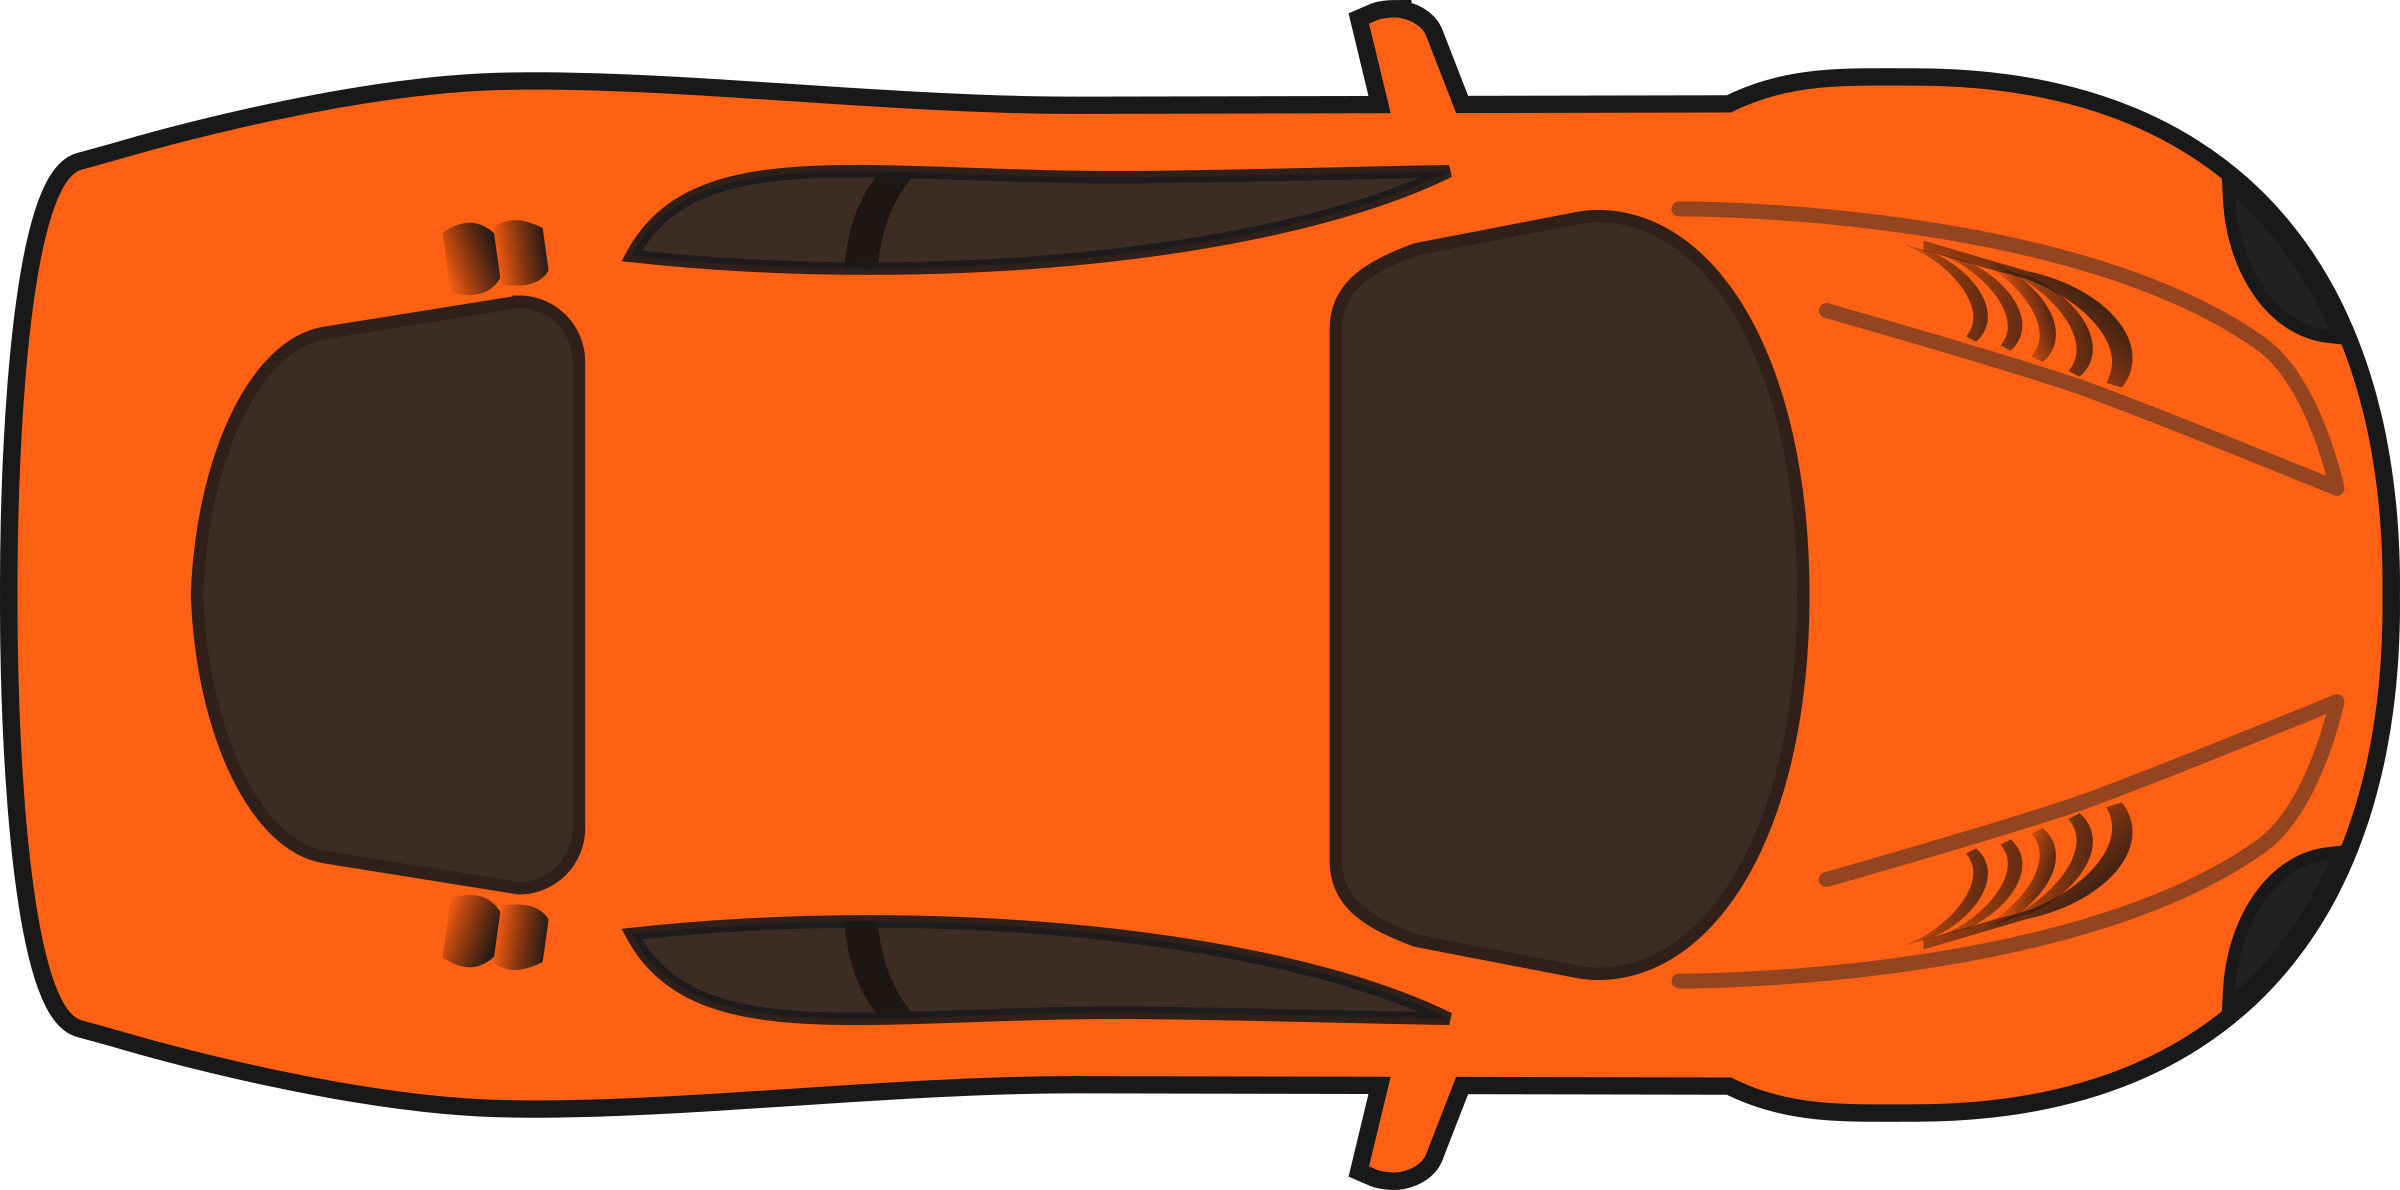 Pie clipart overhead.  collection of car